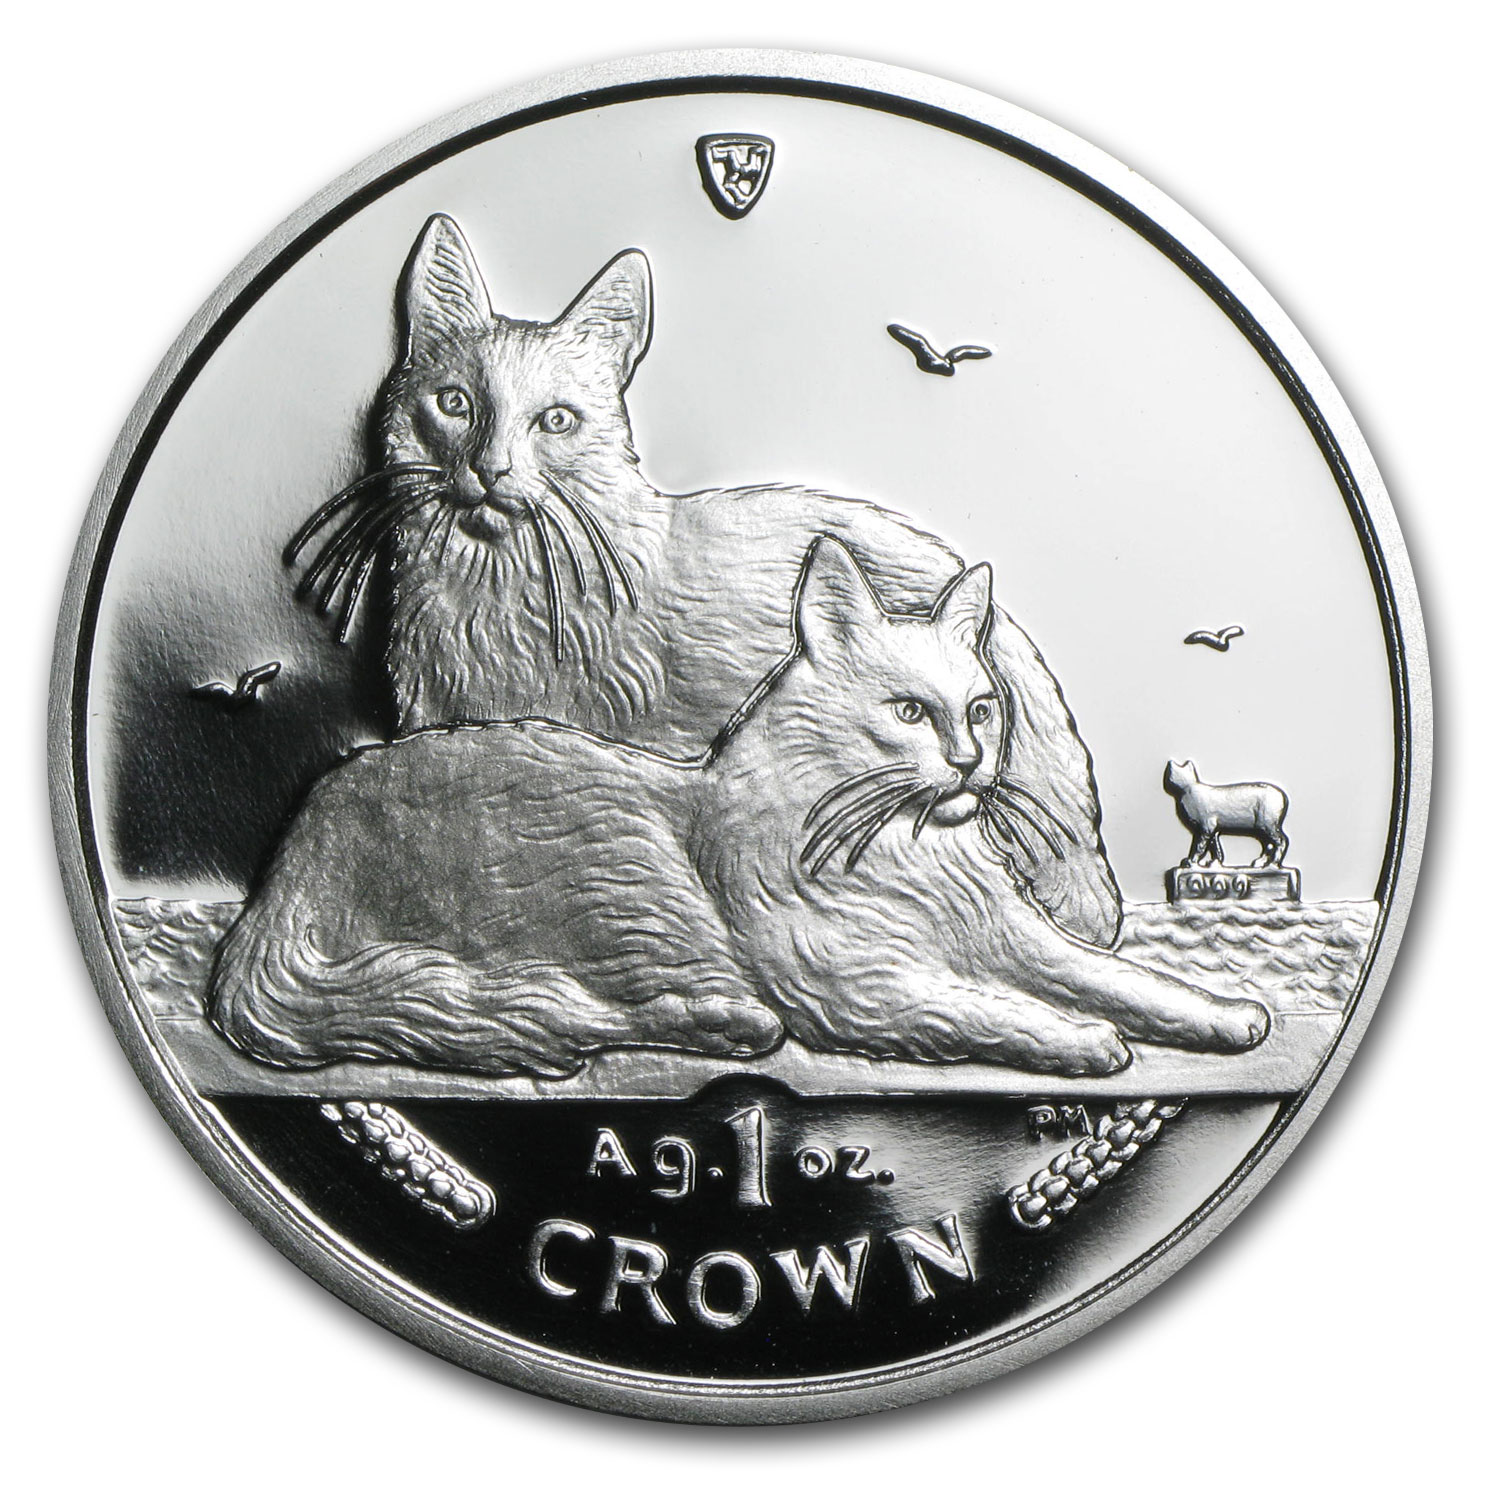 2011 Isle of Man Silver 1 Crown Turkish Angora Cat Proof